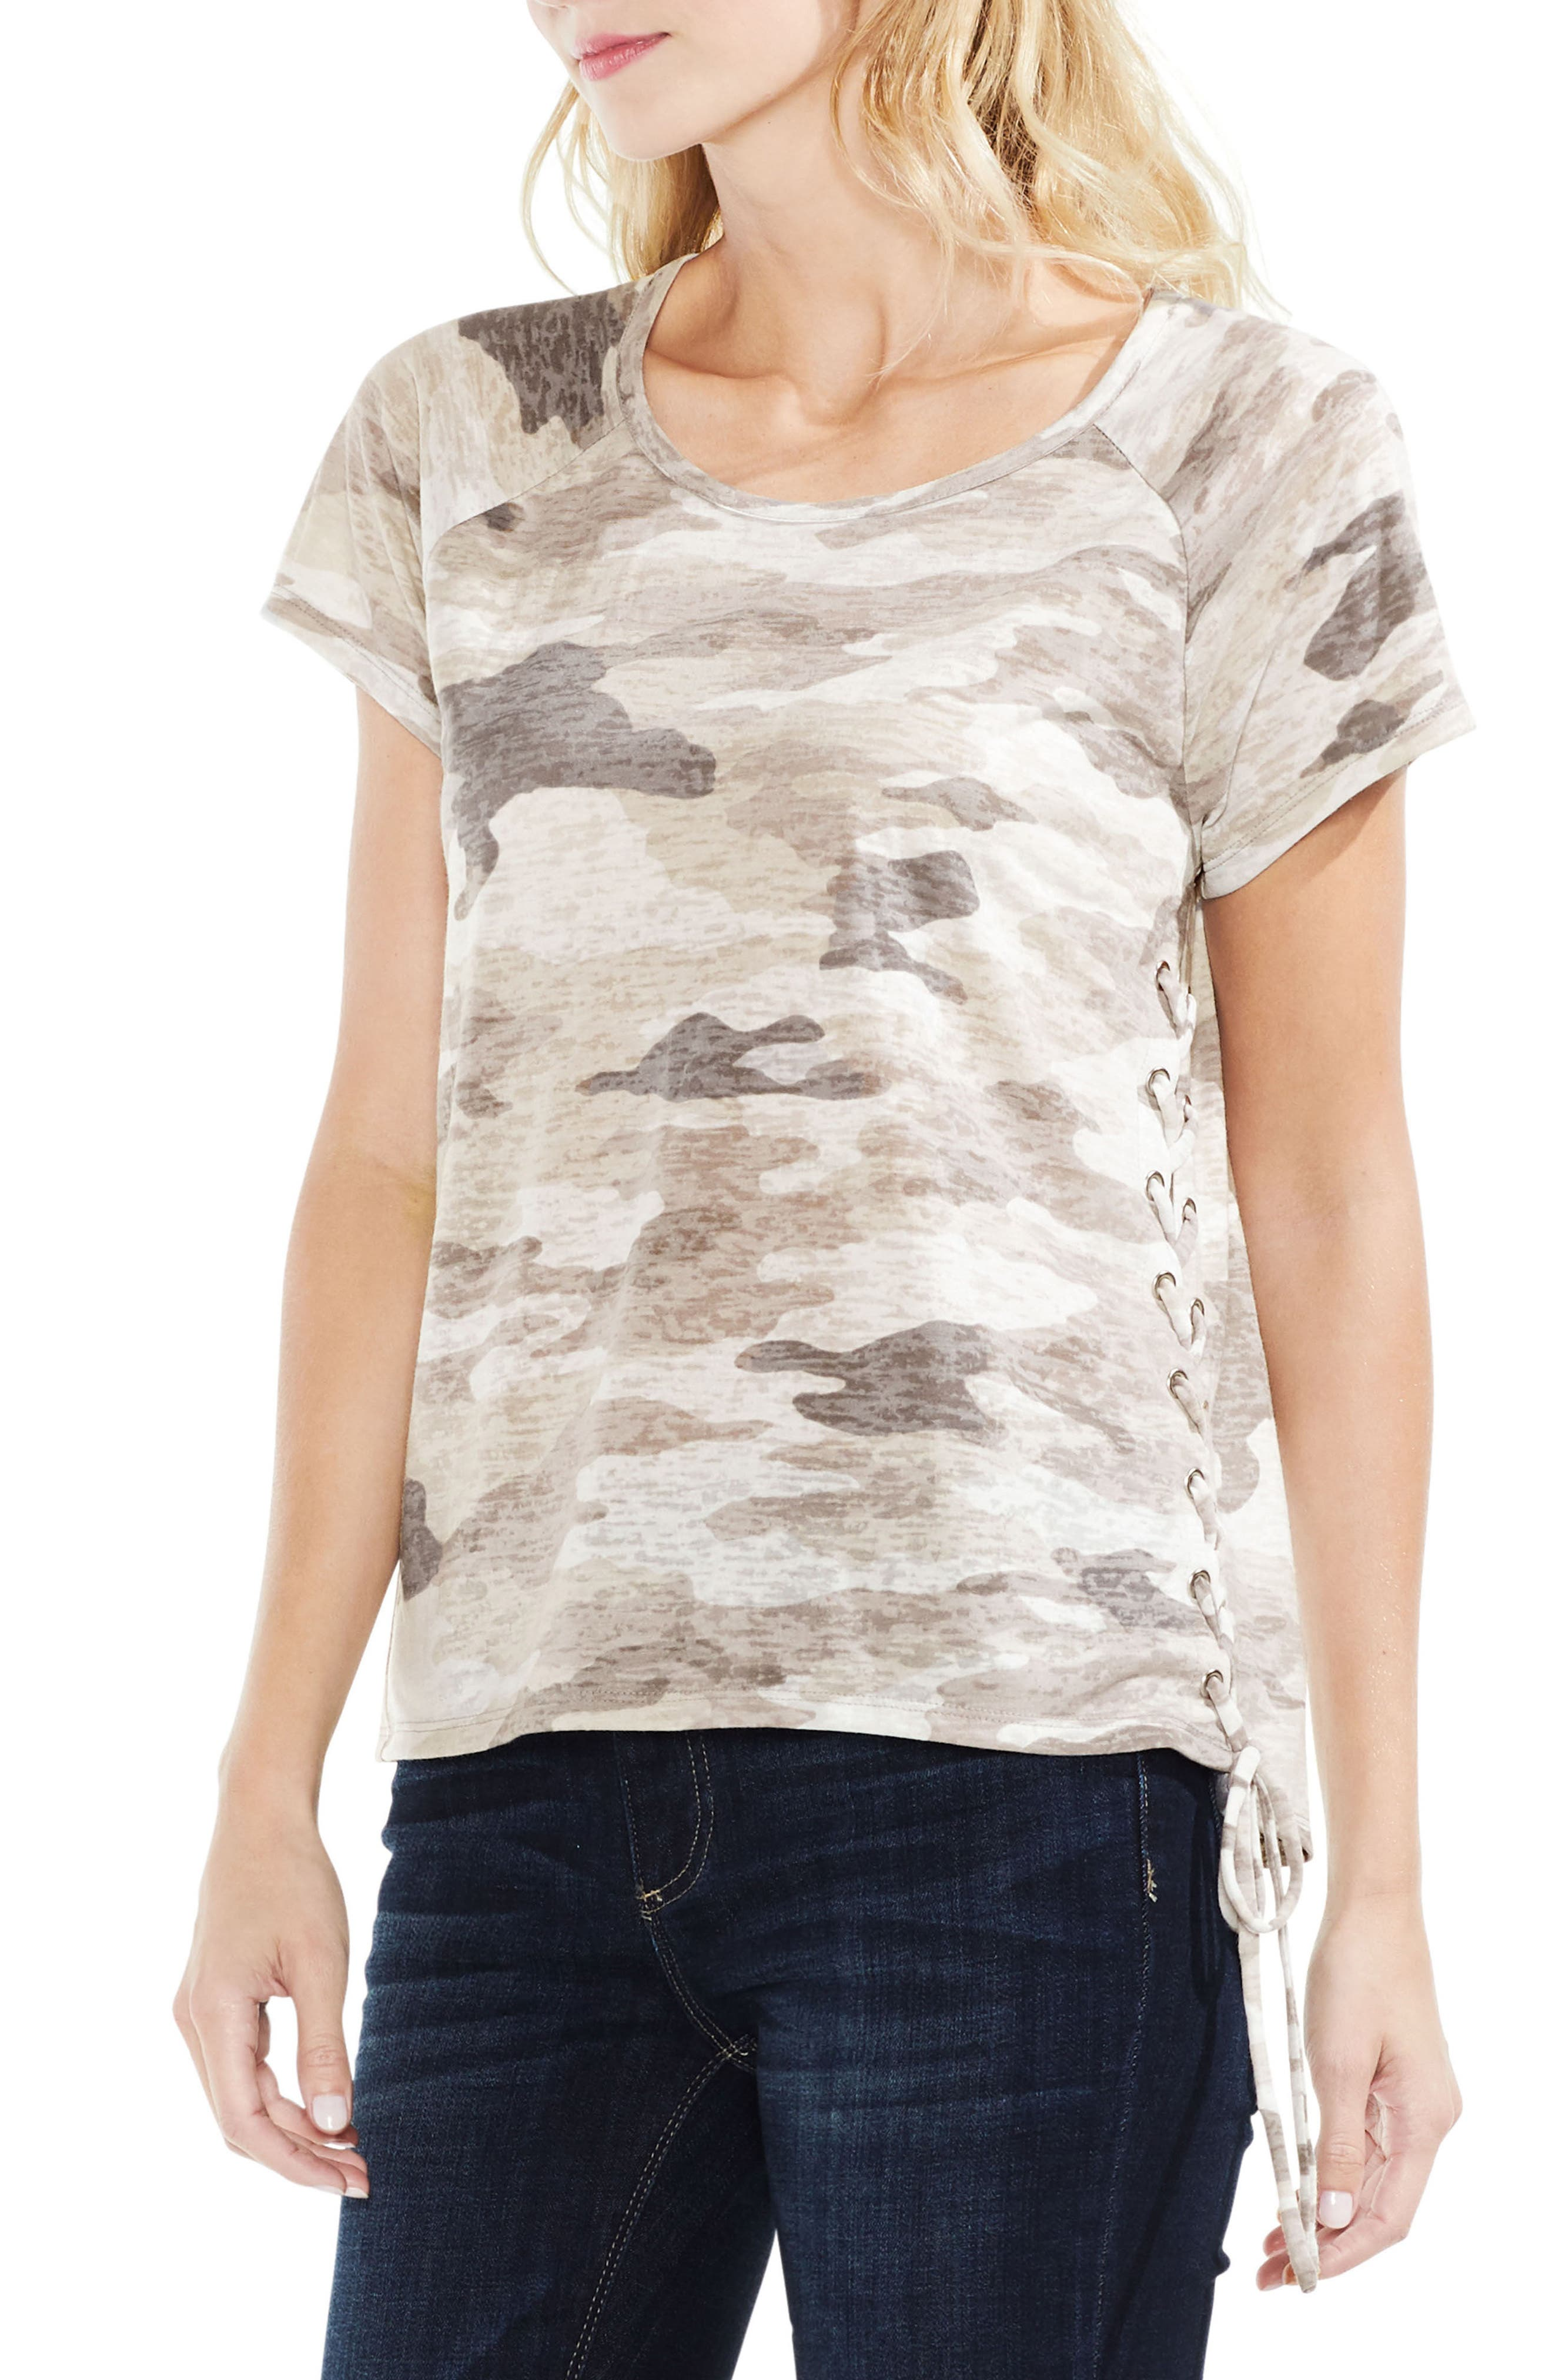 Alternate Image 1 Selected - Vince Camuto Avenue Camo Lace-Up Top